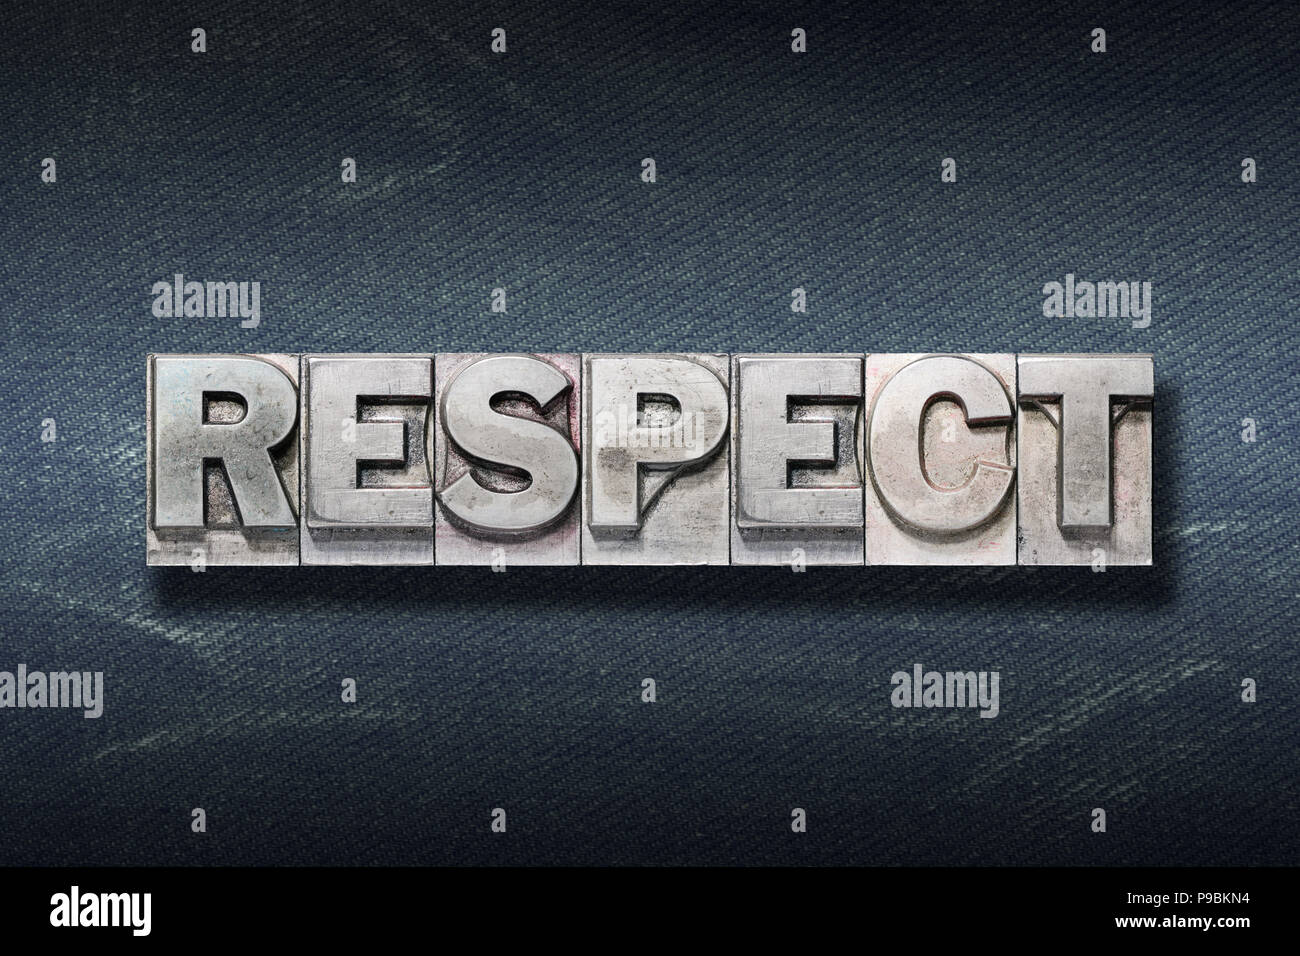 respect word made from metallic letterpress on dark jeans background - Stock Image